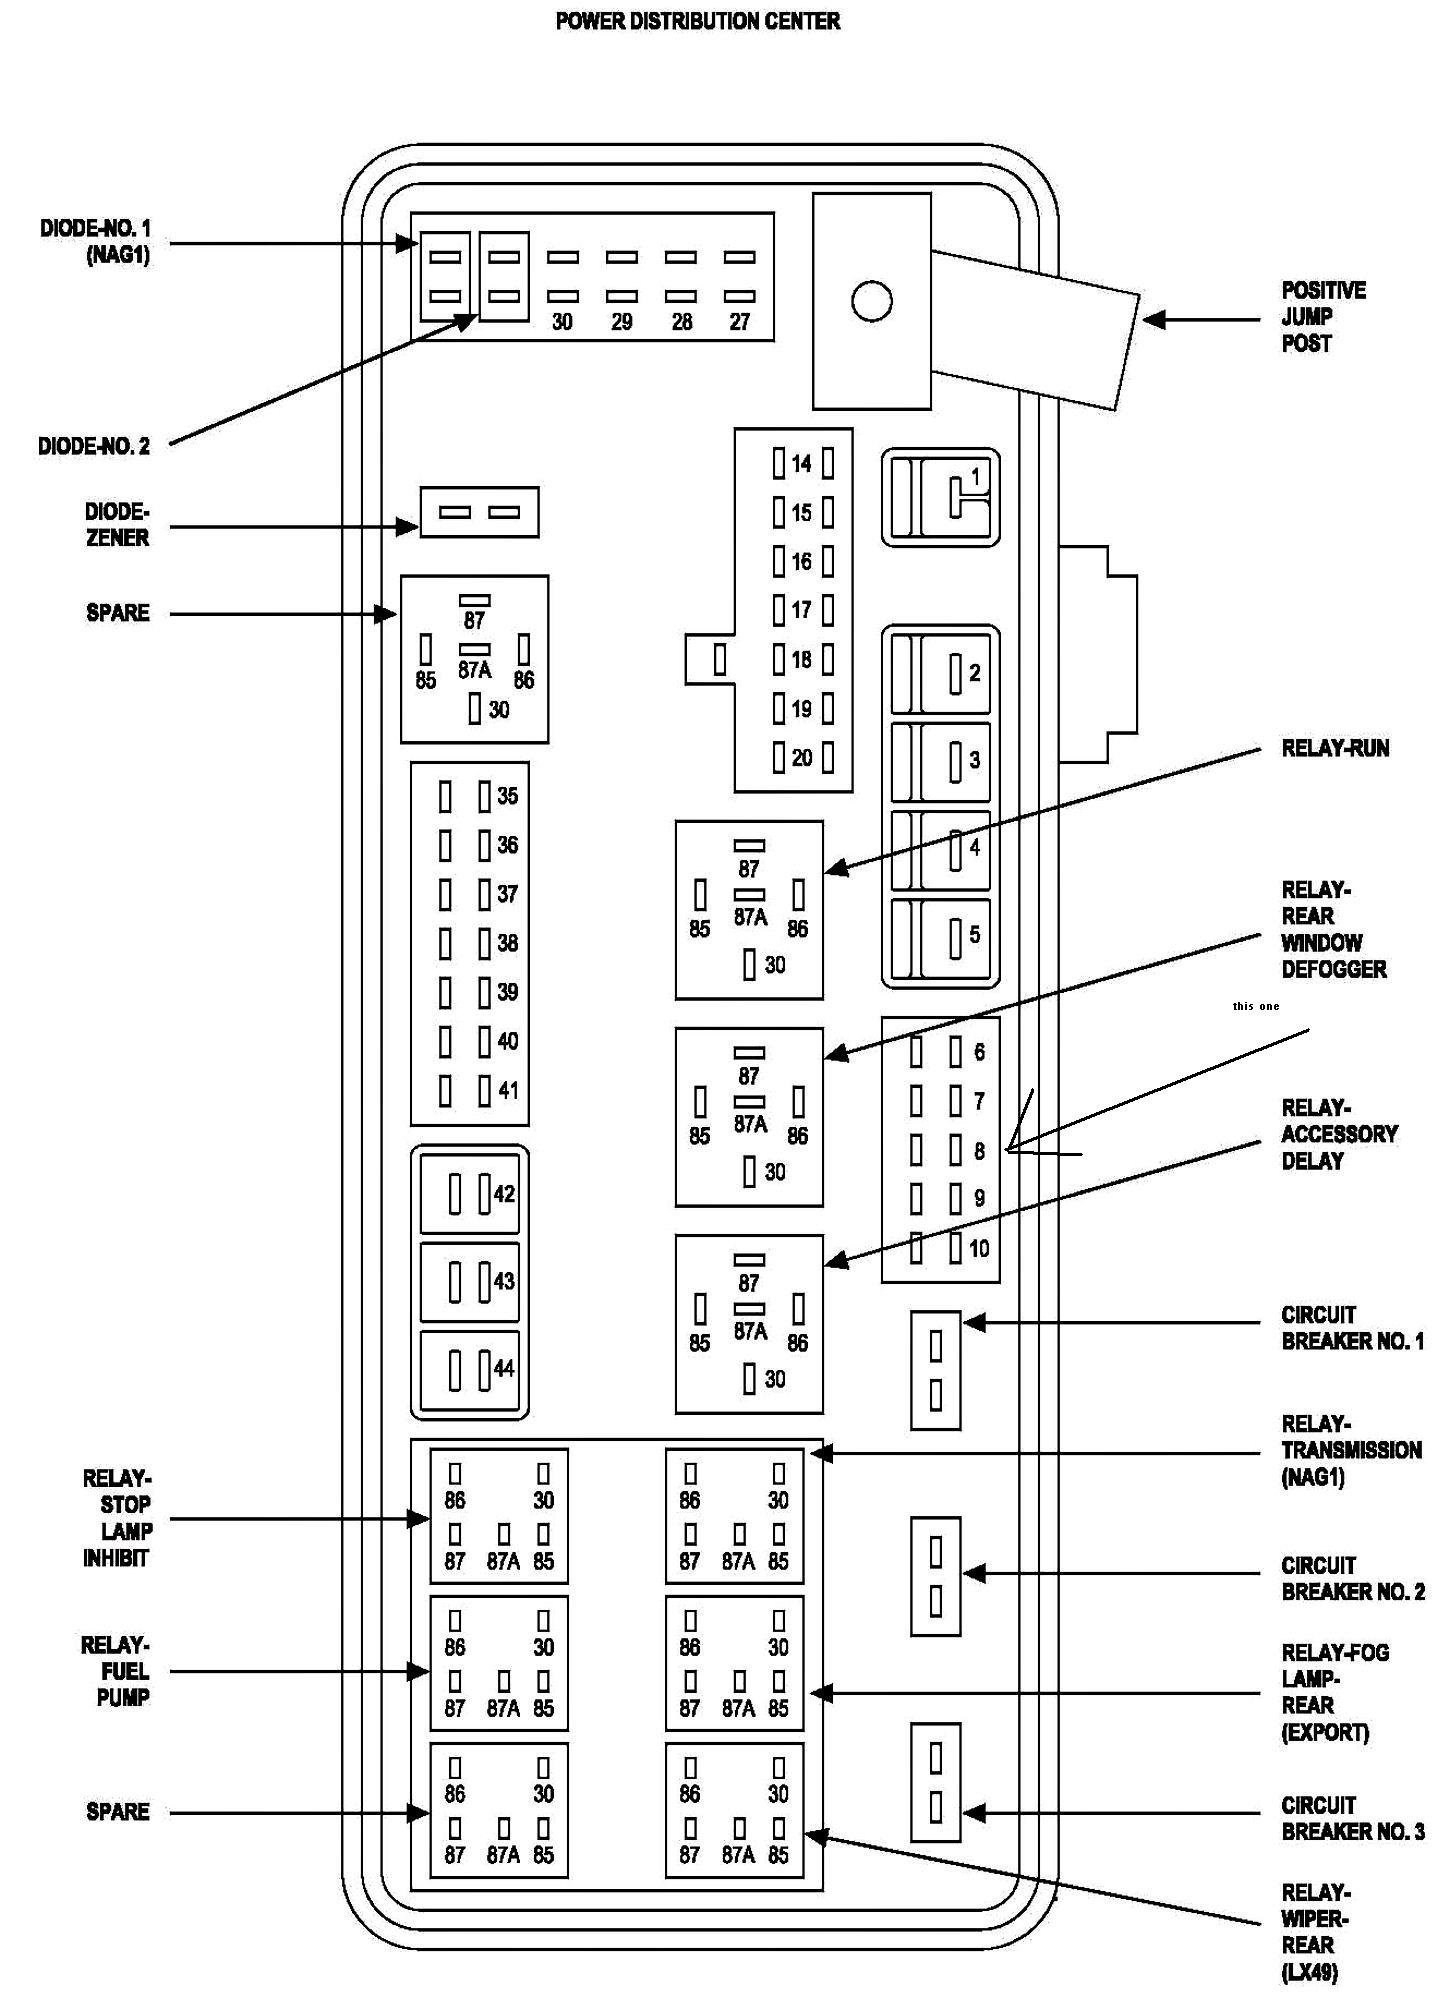 Wiring Diagram 2006 Dodge 3500 - Today Wiring Diagram - 2007 Dodge Ram Wiring Diagram